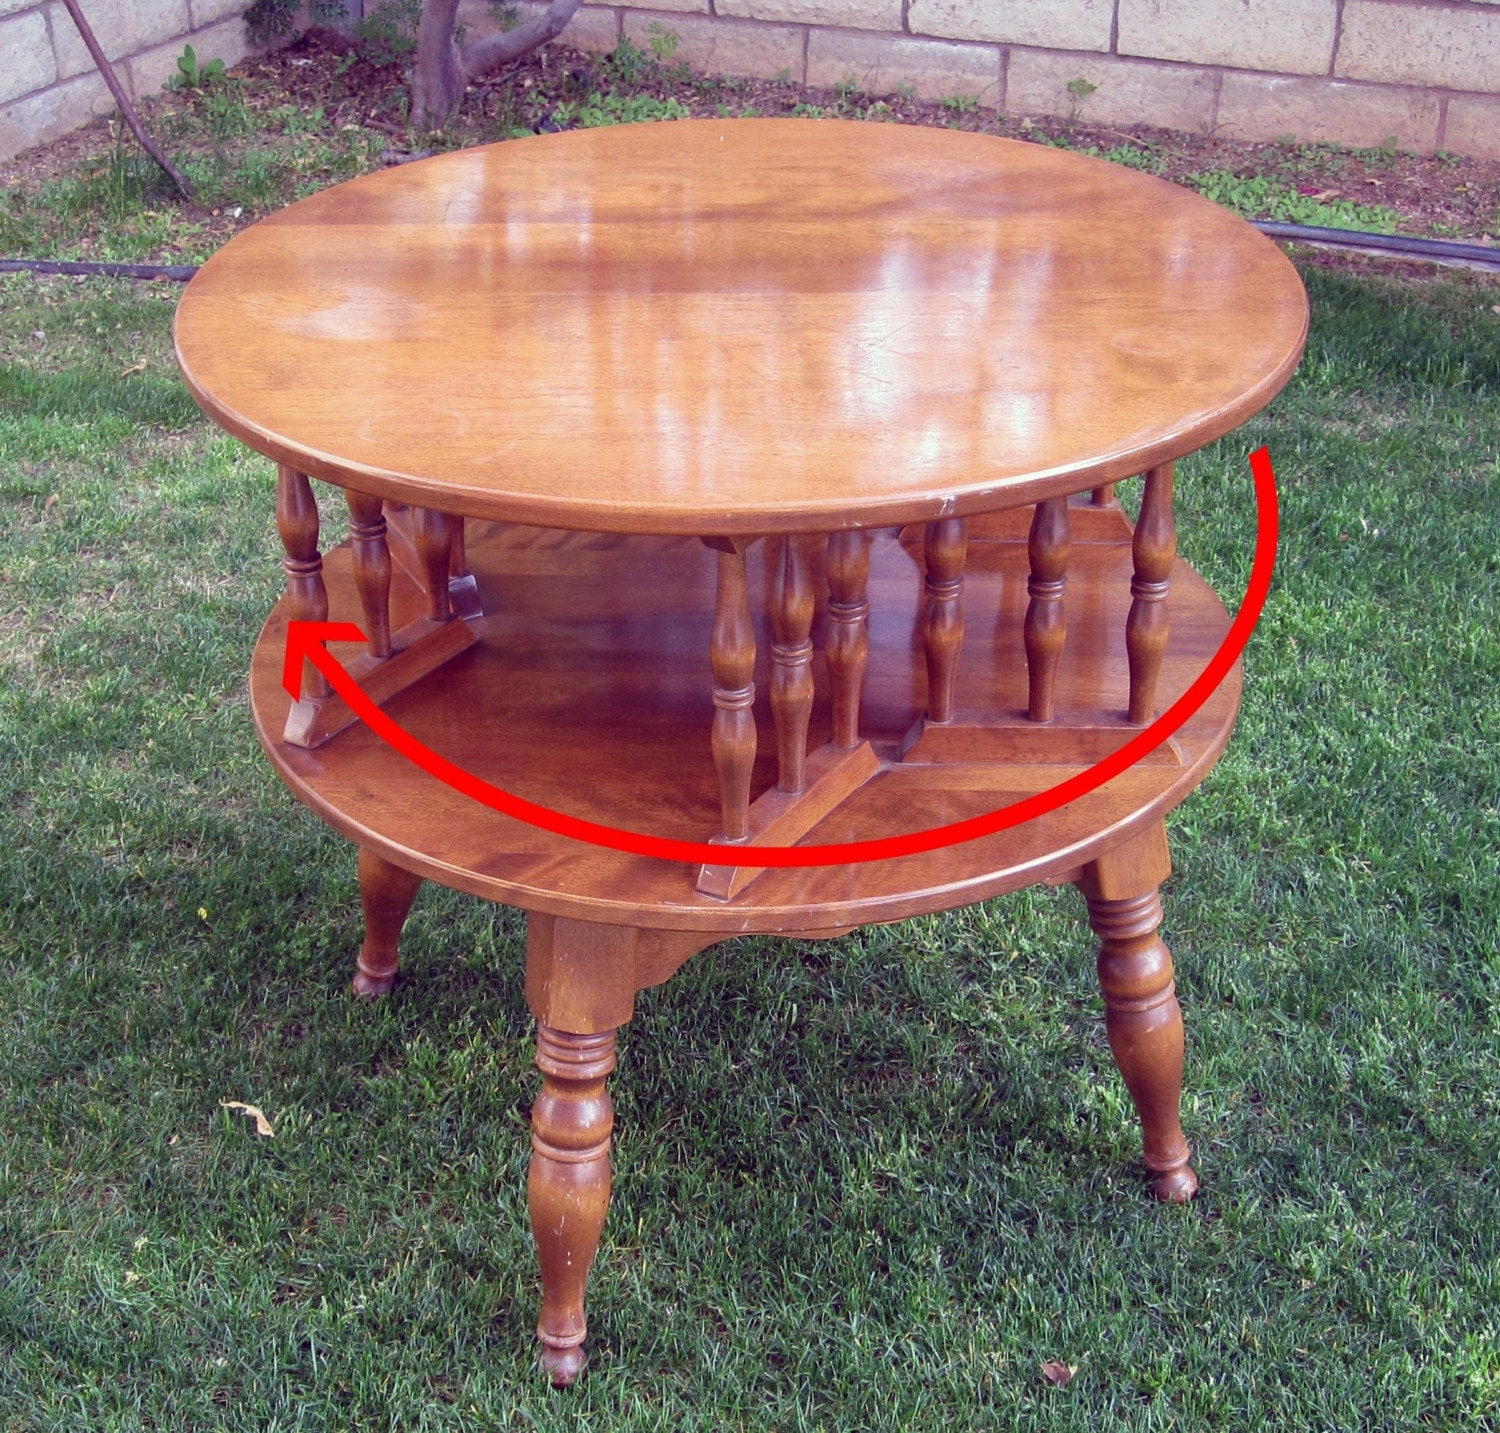 Vintage Baumritter Ethan Allen Rotating Coffee Table / Retro